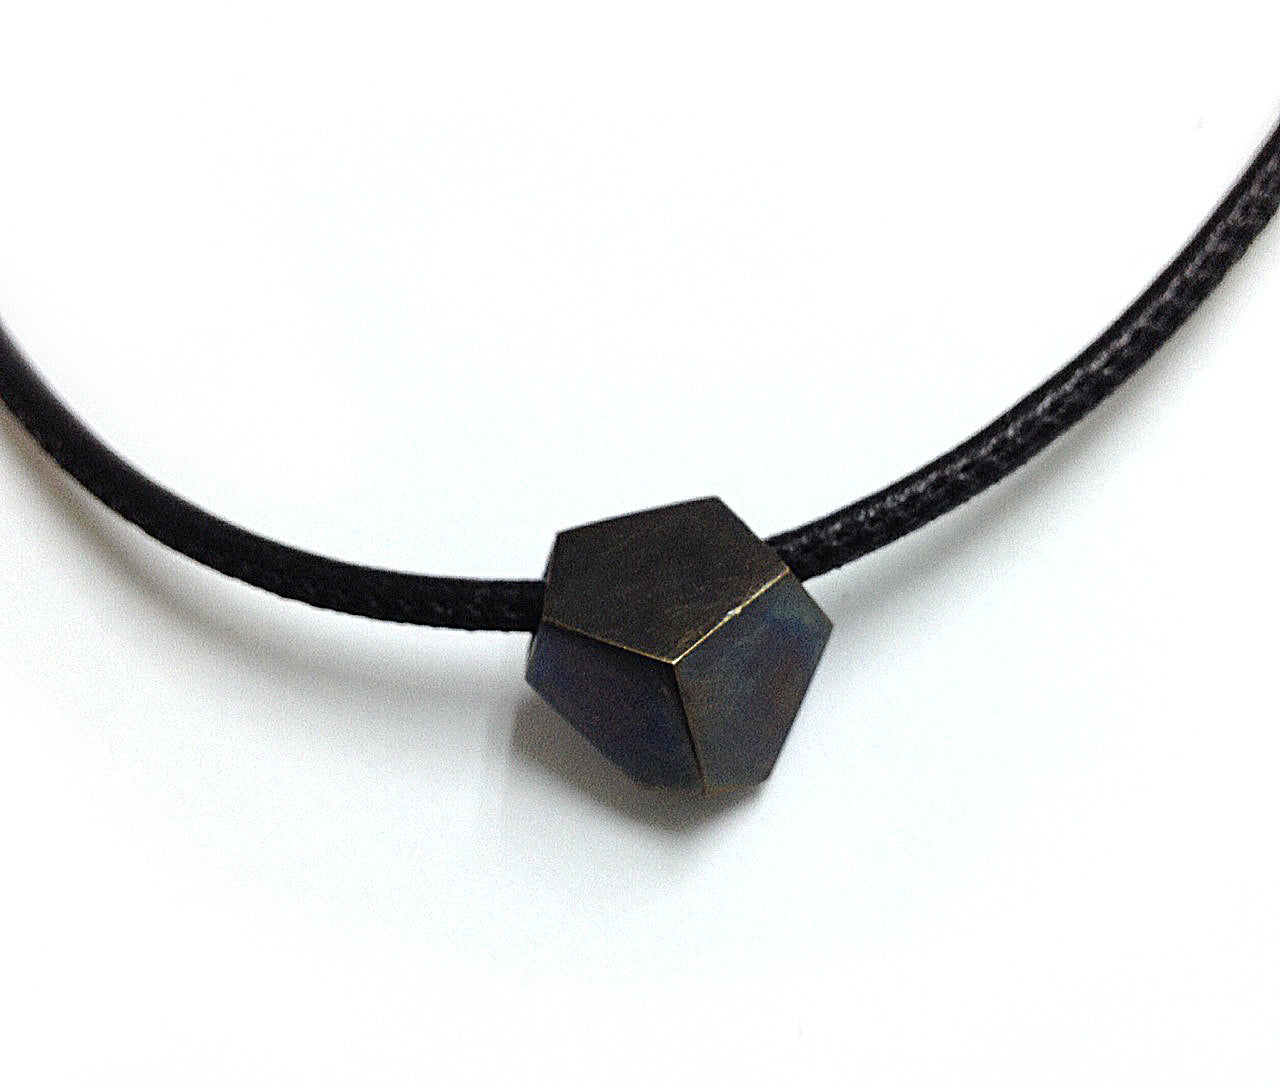 Geometric hexagon shaped oxidized bronze charm on stitched leather chord.  Choker necklace